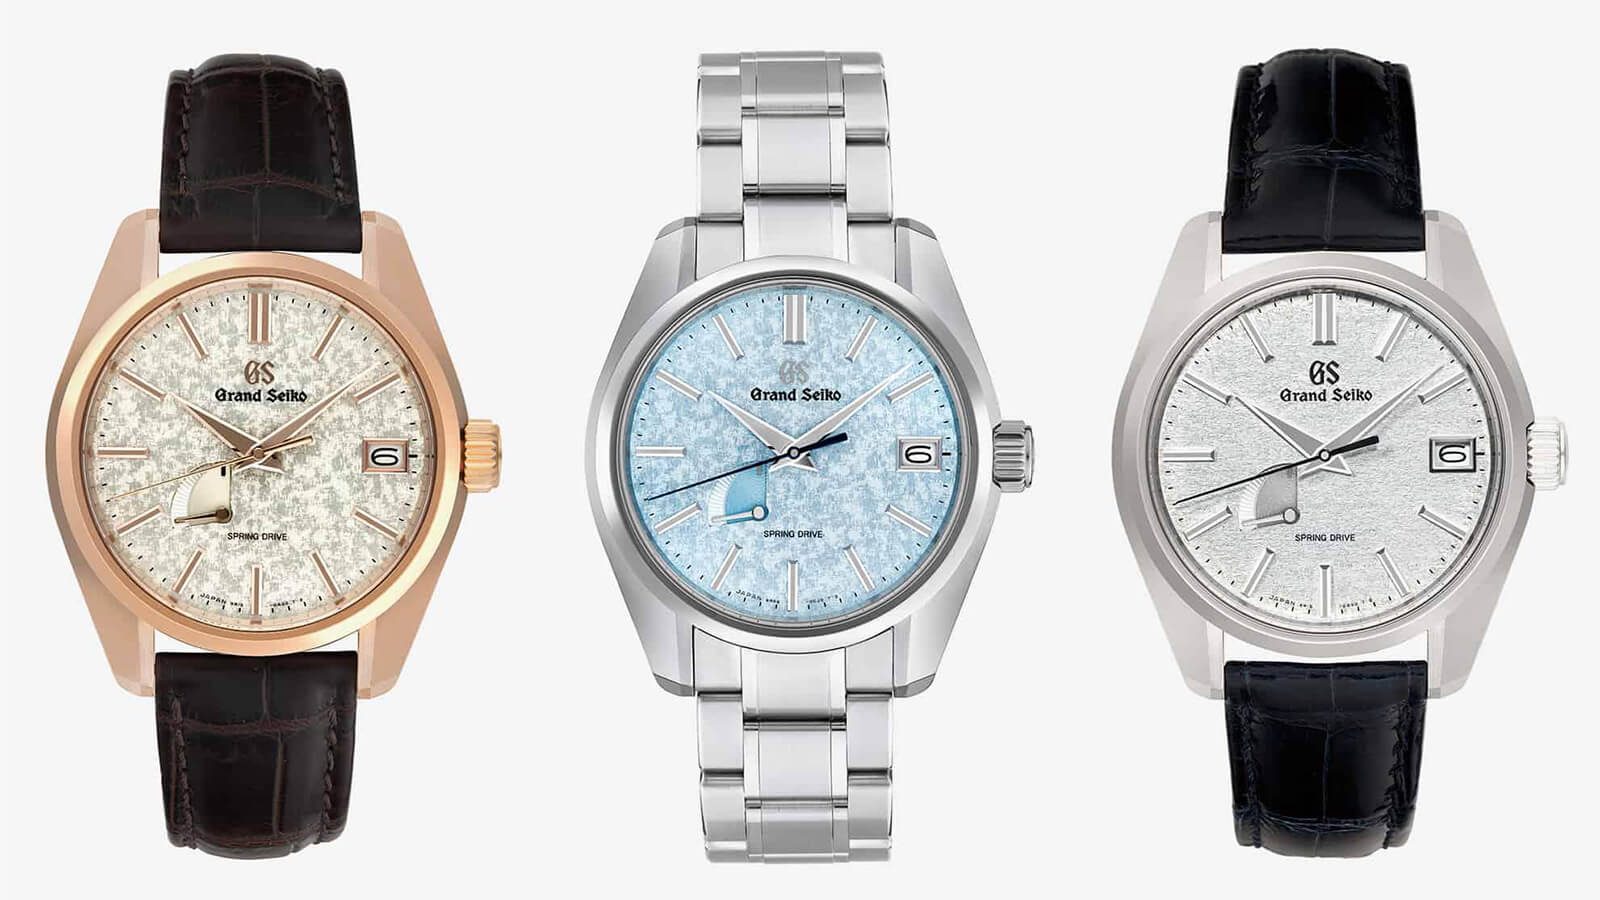 From The Press: Grand Seiko Has Gone West With 3 US Limited Editions